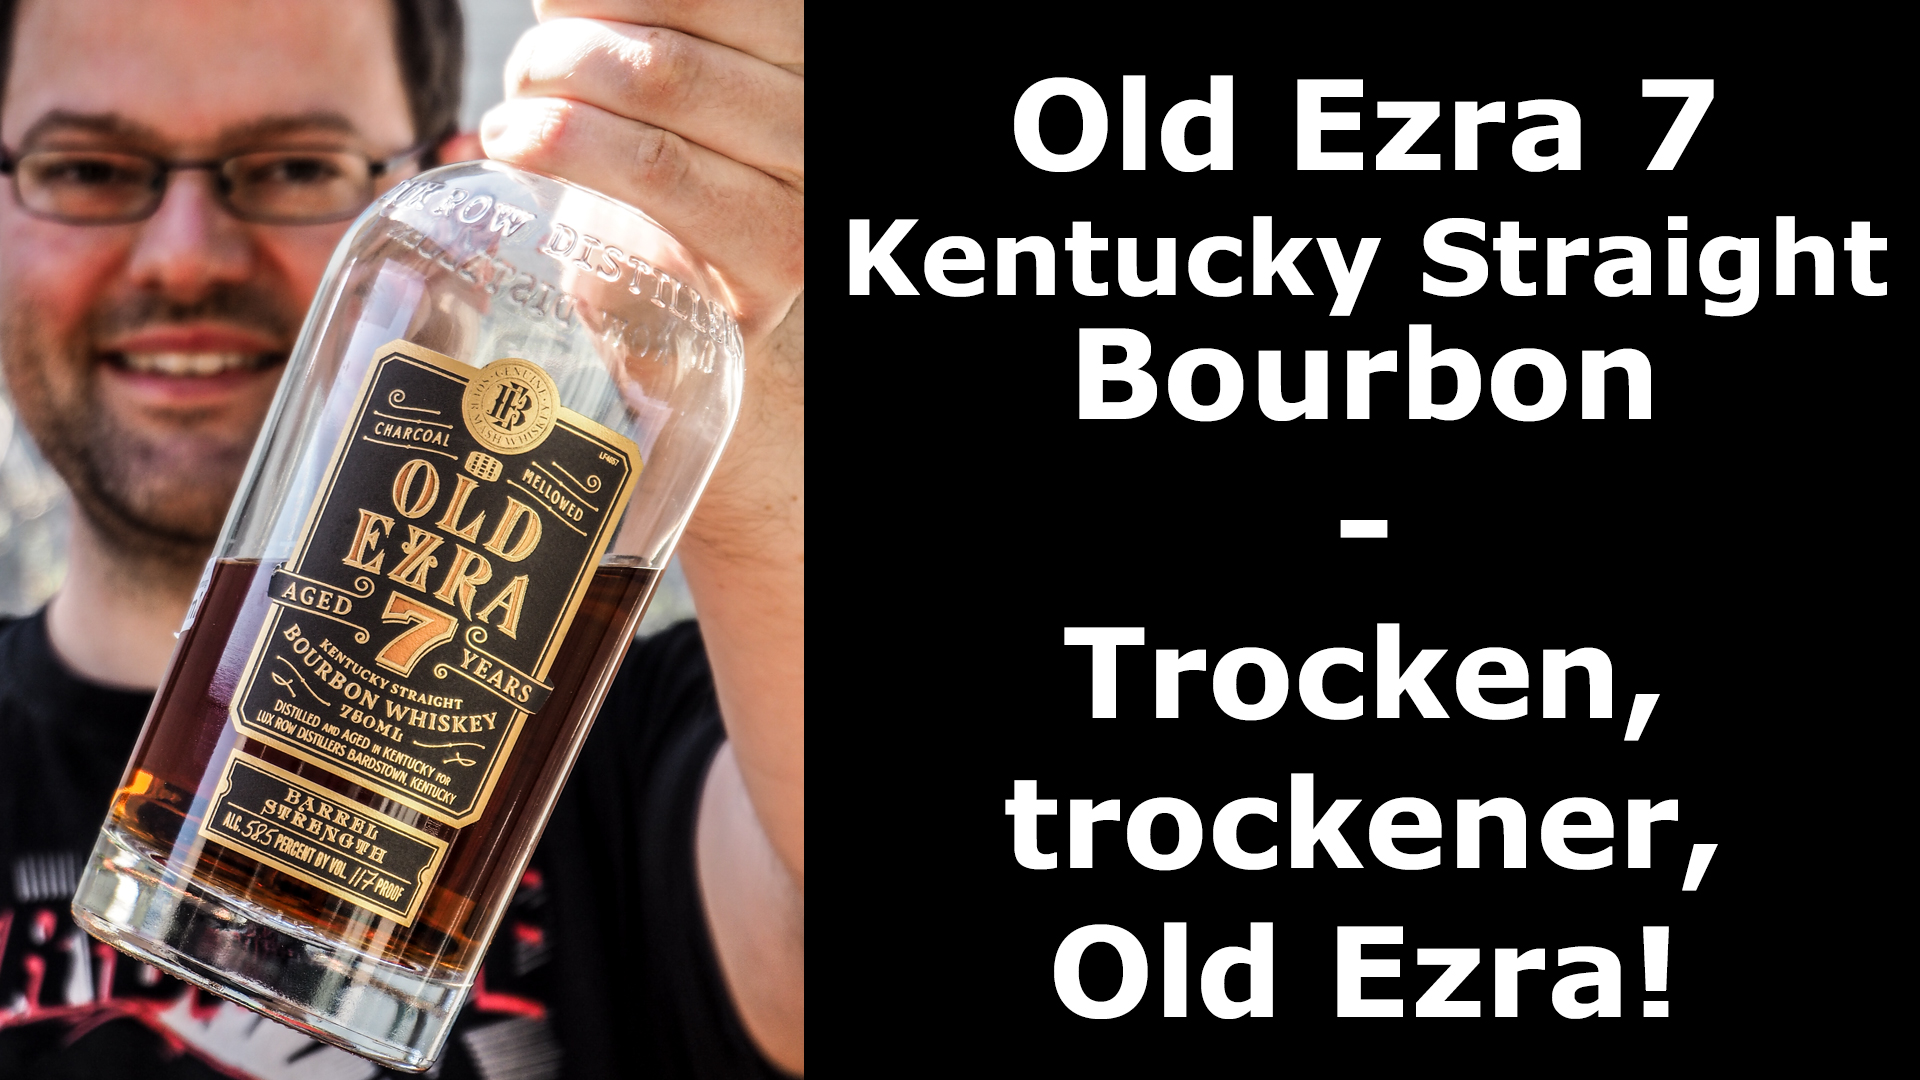 Whisky-Tasting: Old Ezra 7 Bourbon